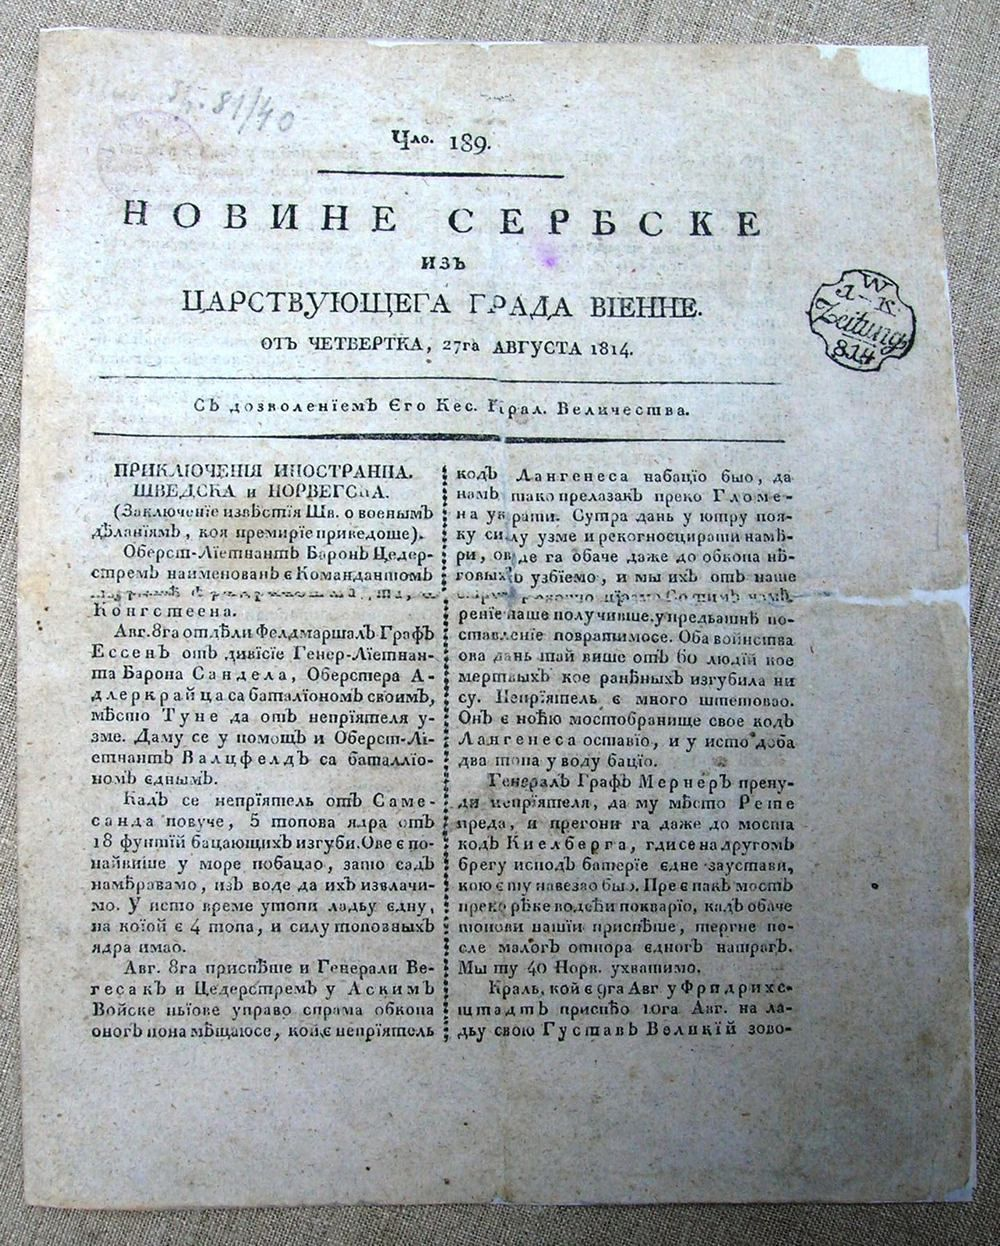 Новине сербске - front page of newspapers printed in Vienna